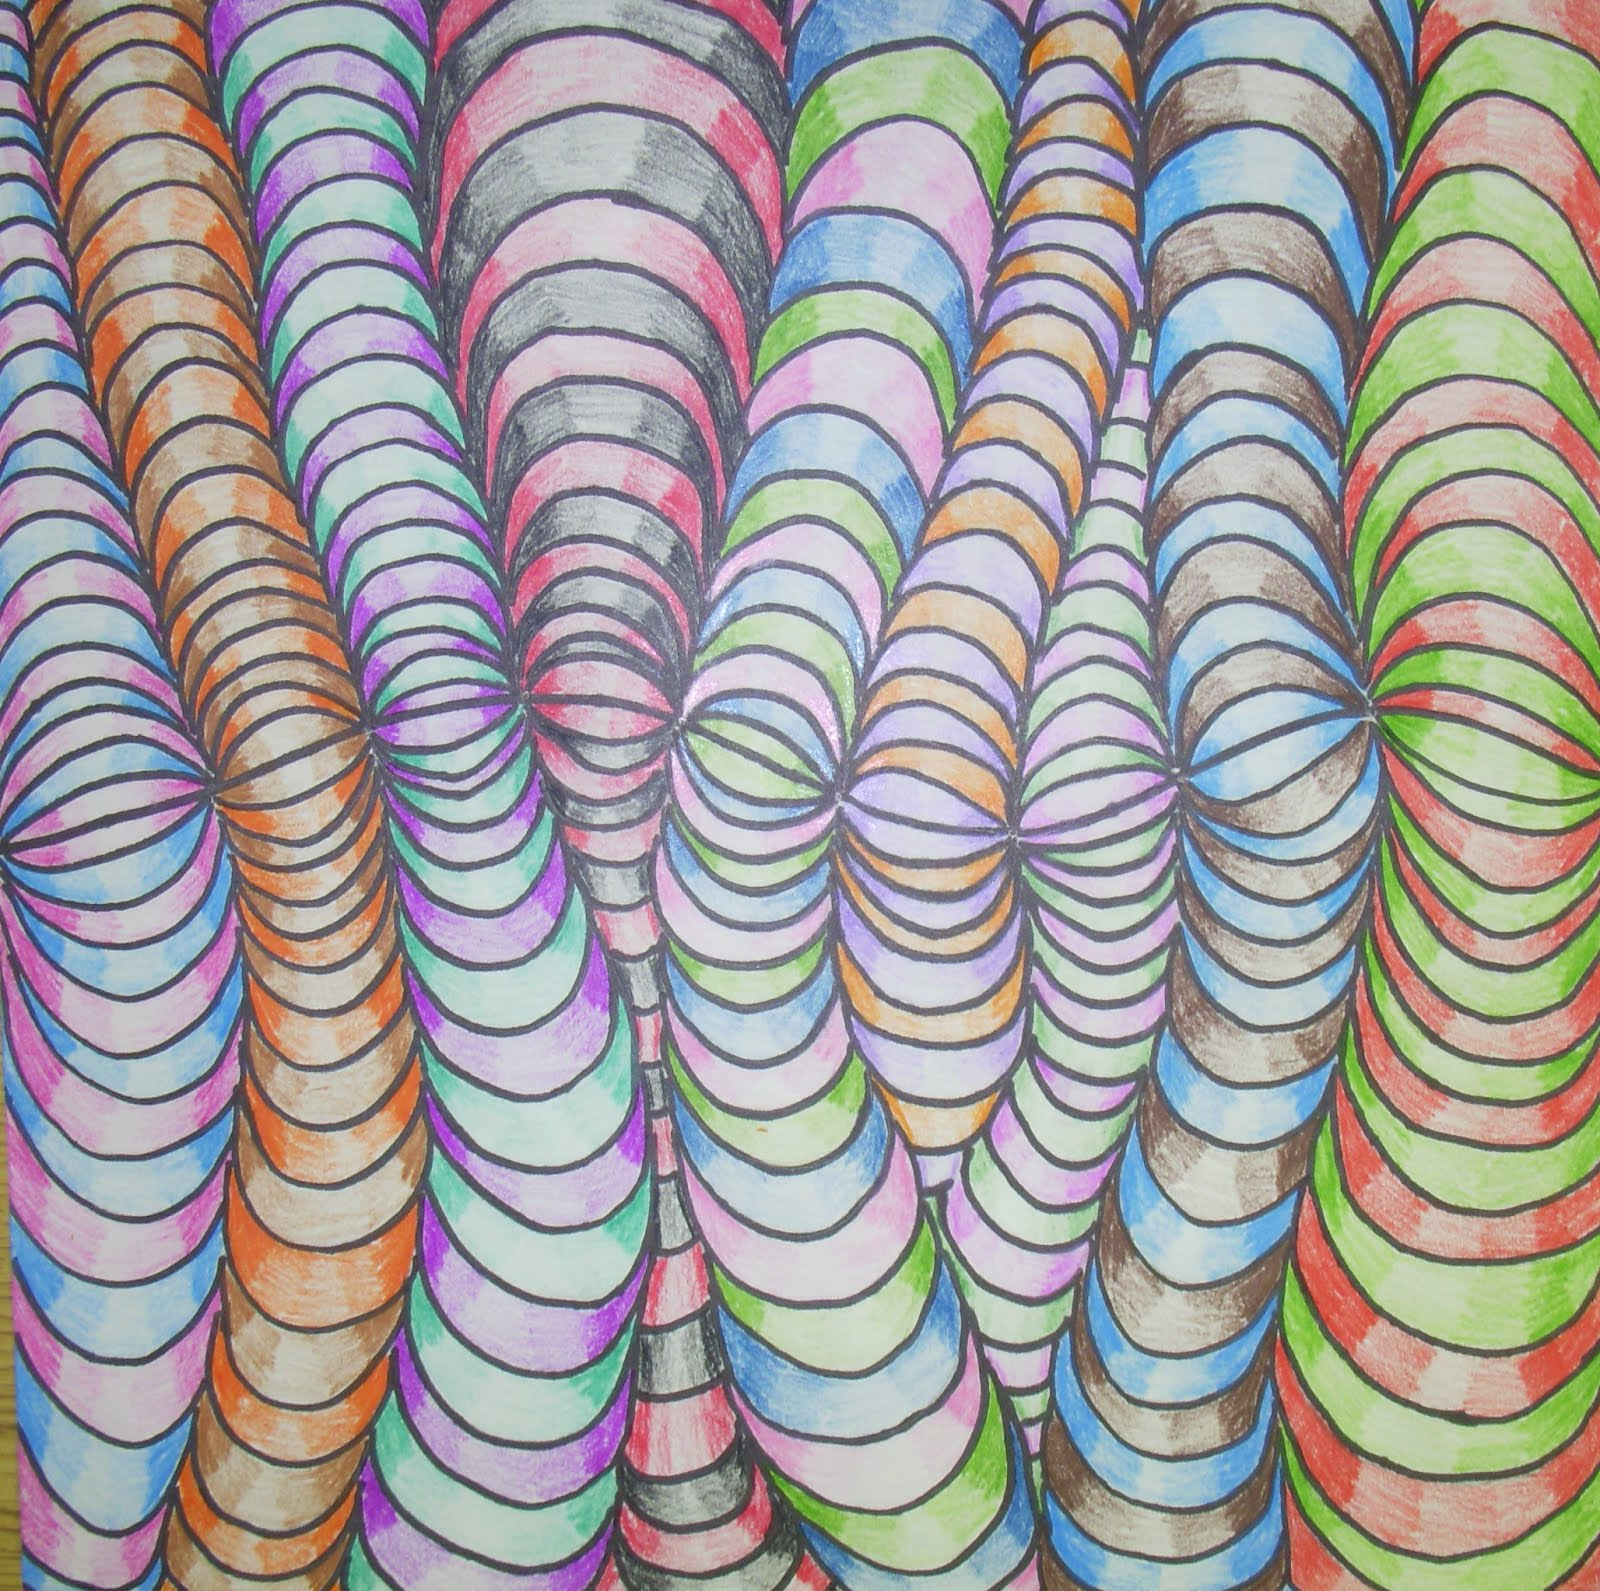 op optical illusions colored pencils factory drawings artwork blending